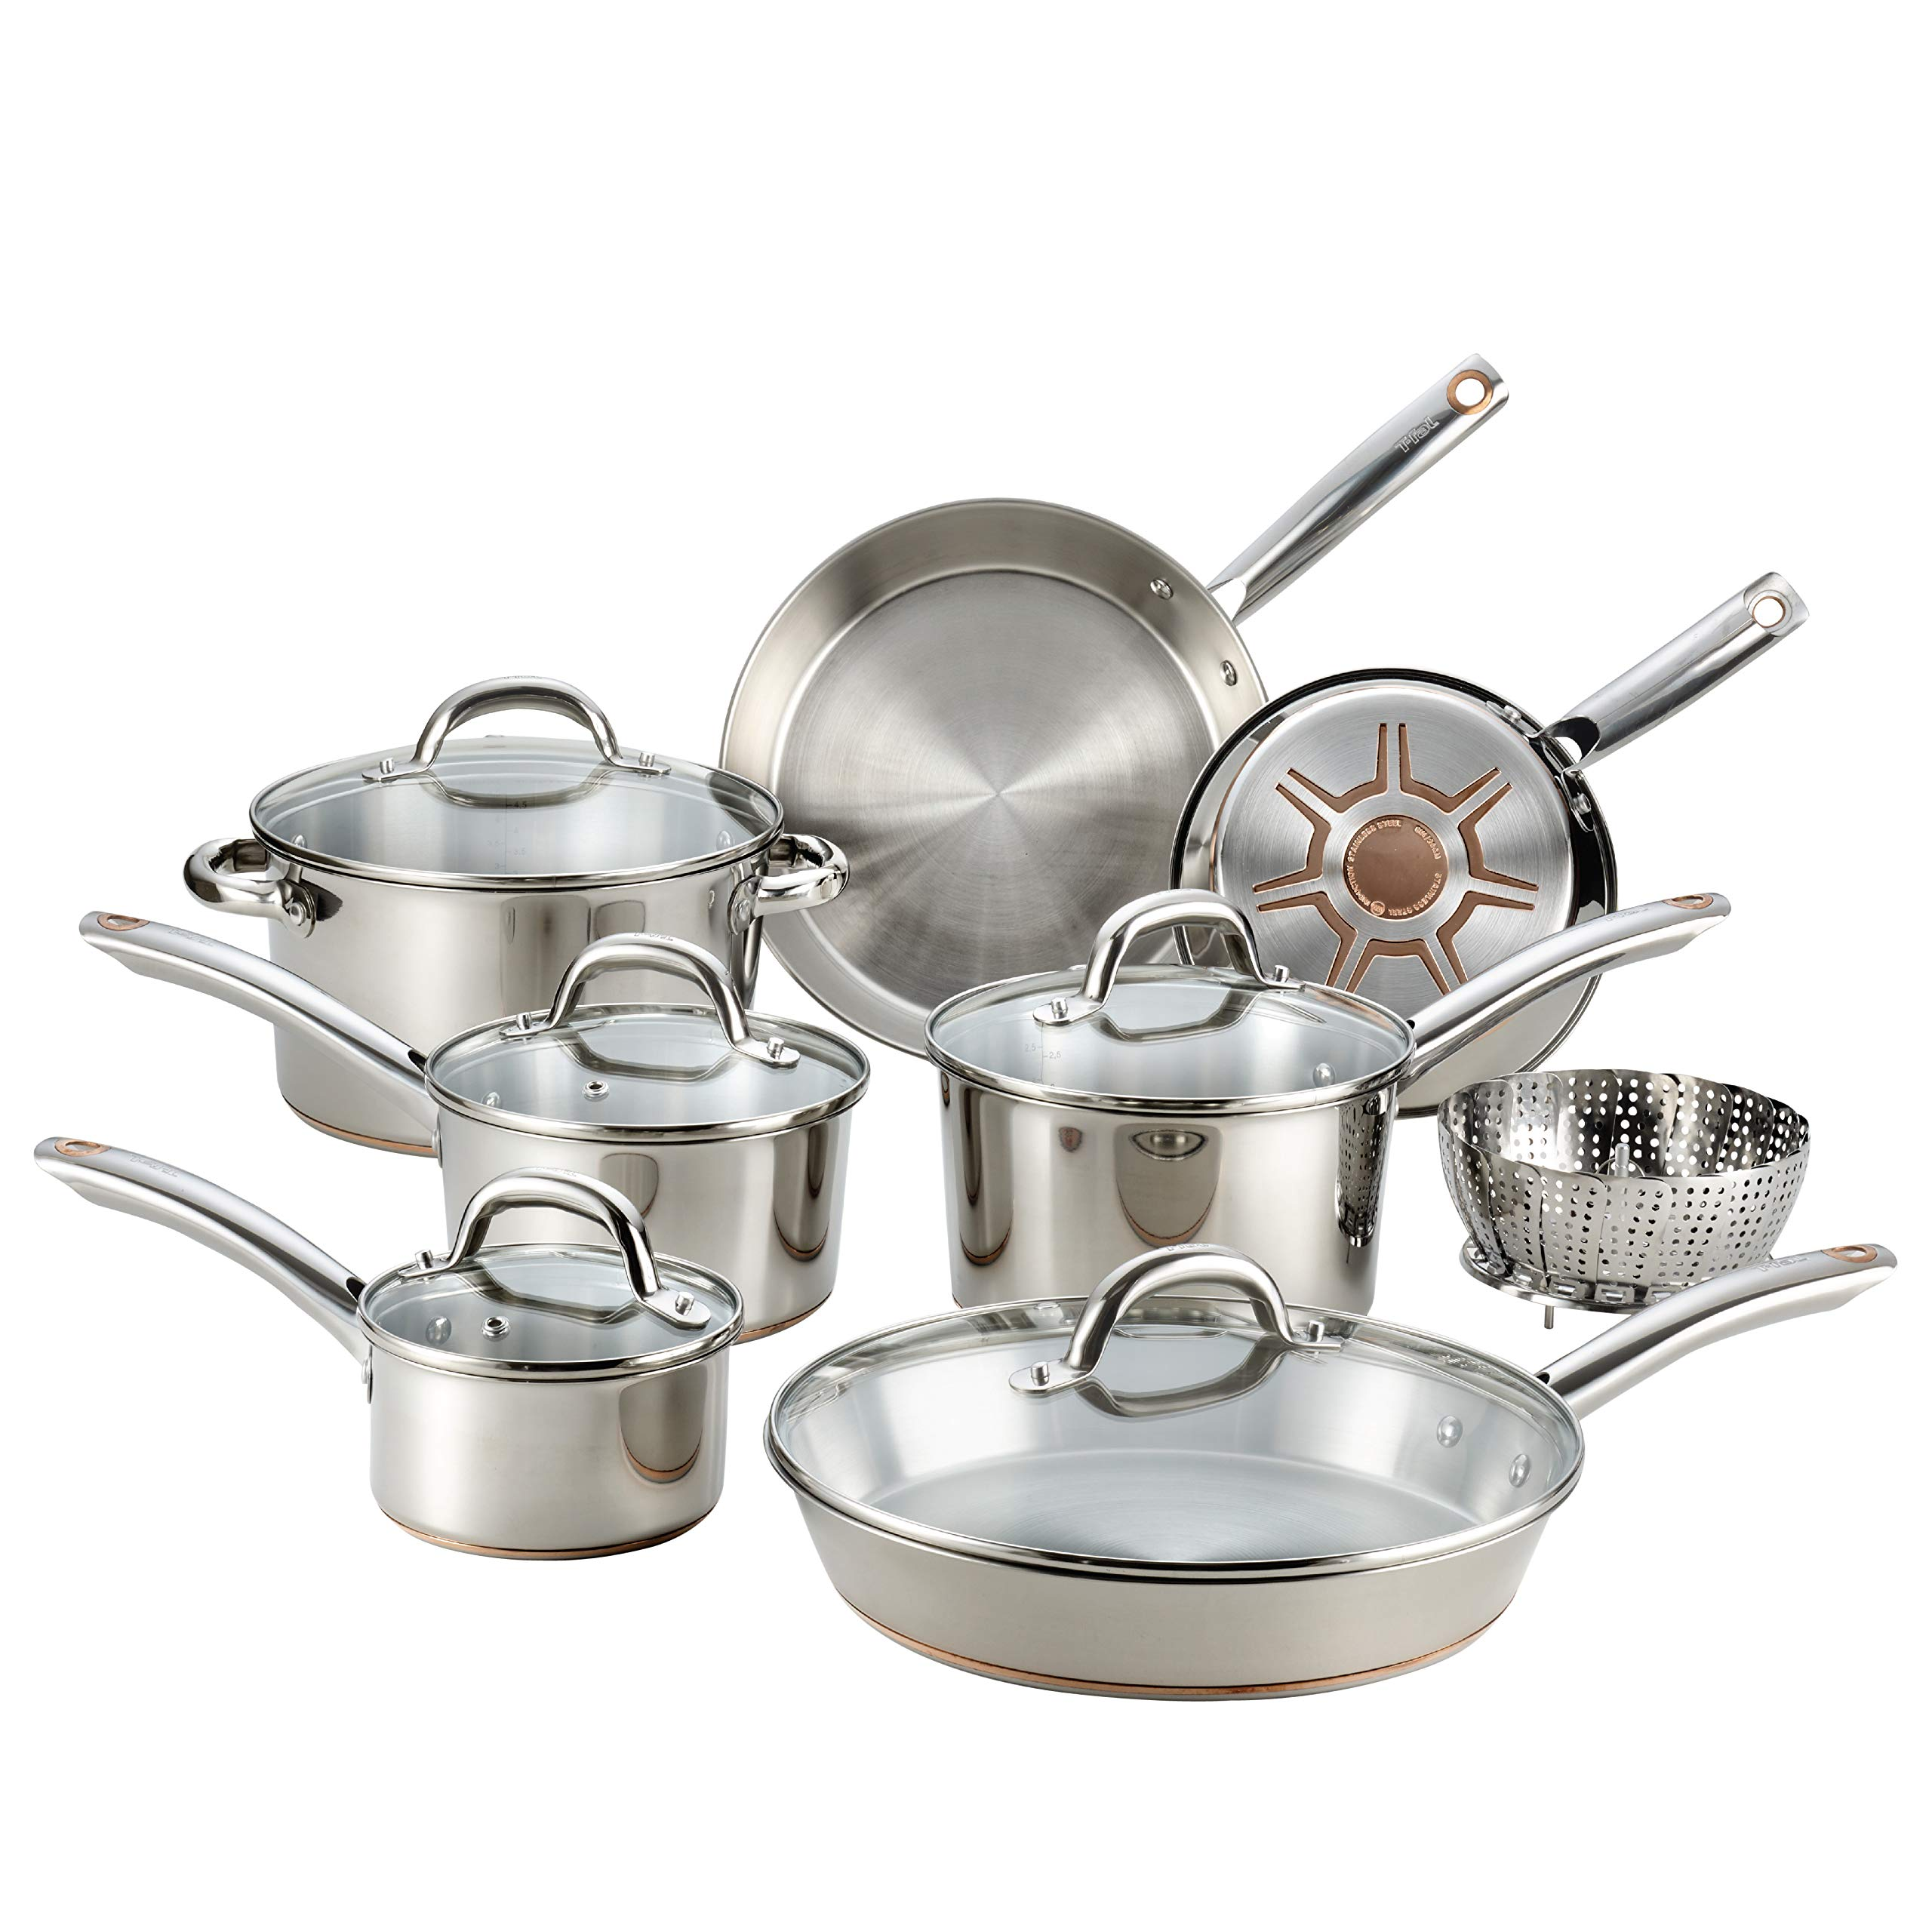 T-fal C836SD Ultimate Stainless Steel Copper Bottom 13 PC Cookware Set, Dishwasher Safe Pots and Pans Set, Silver by T-fal